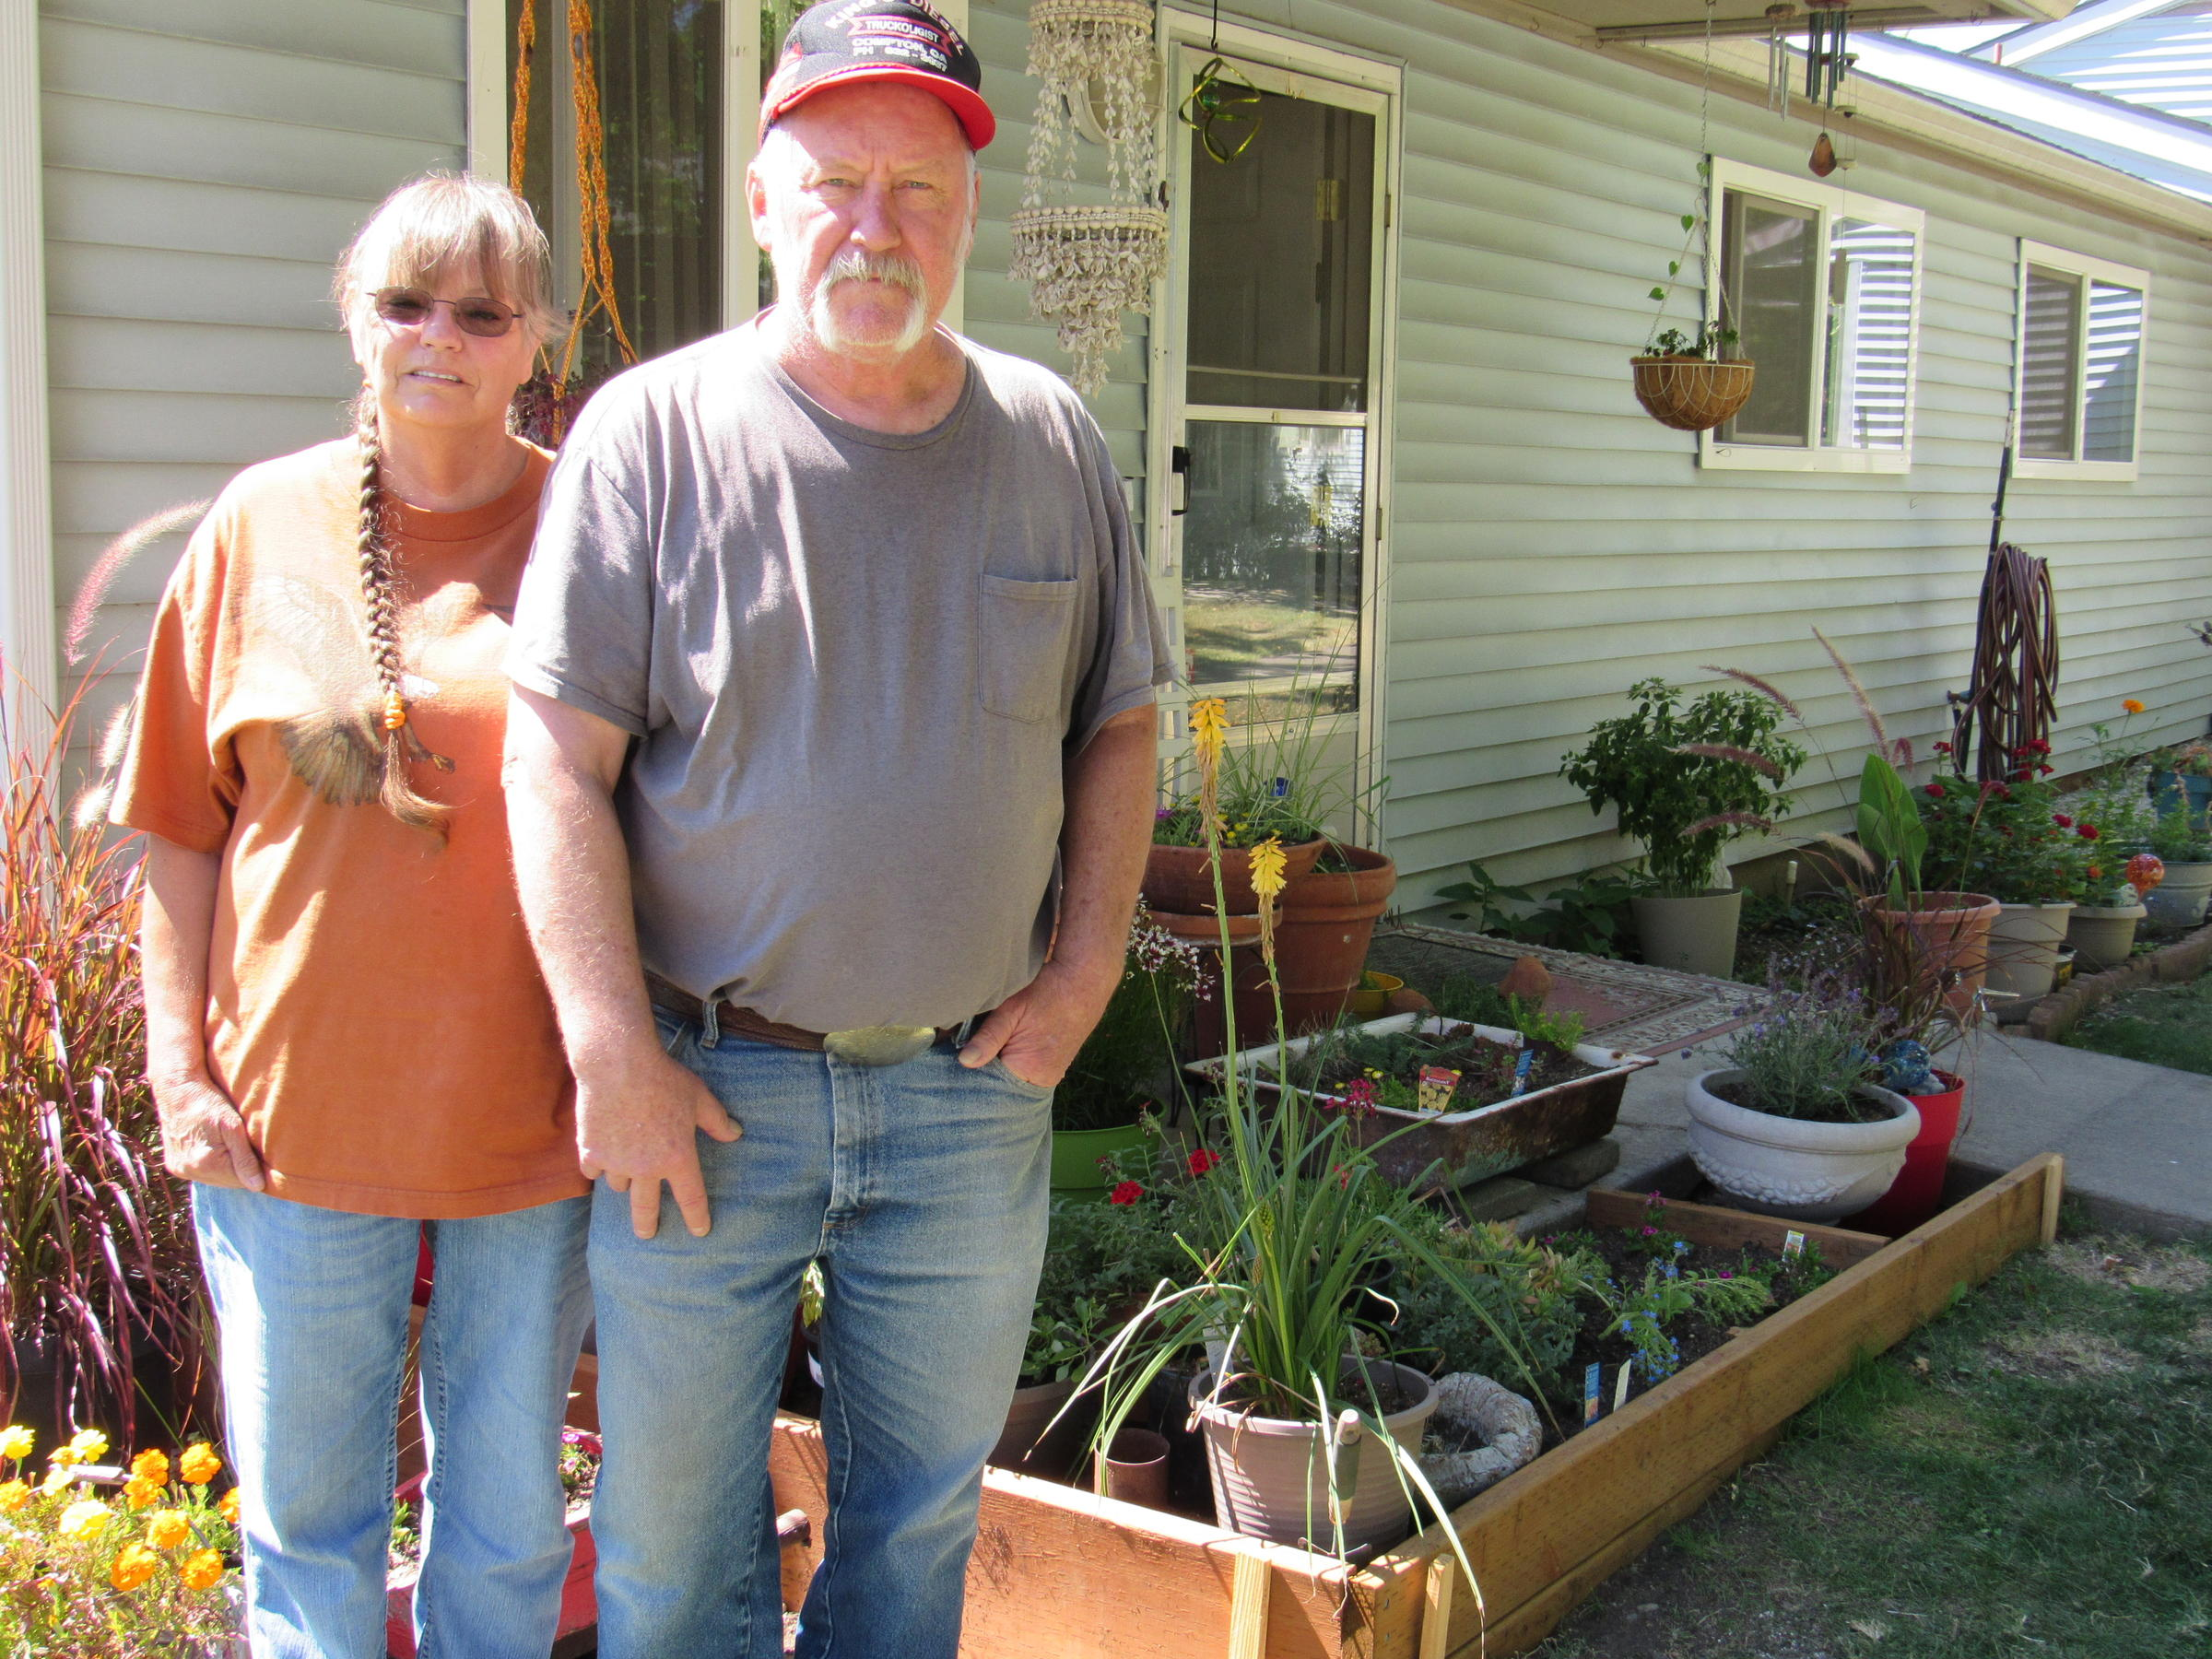 Linda And Larry Pratt And Their Garden At Patio Village In Talent, Oregon.